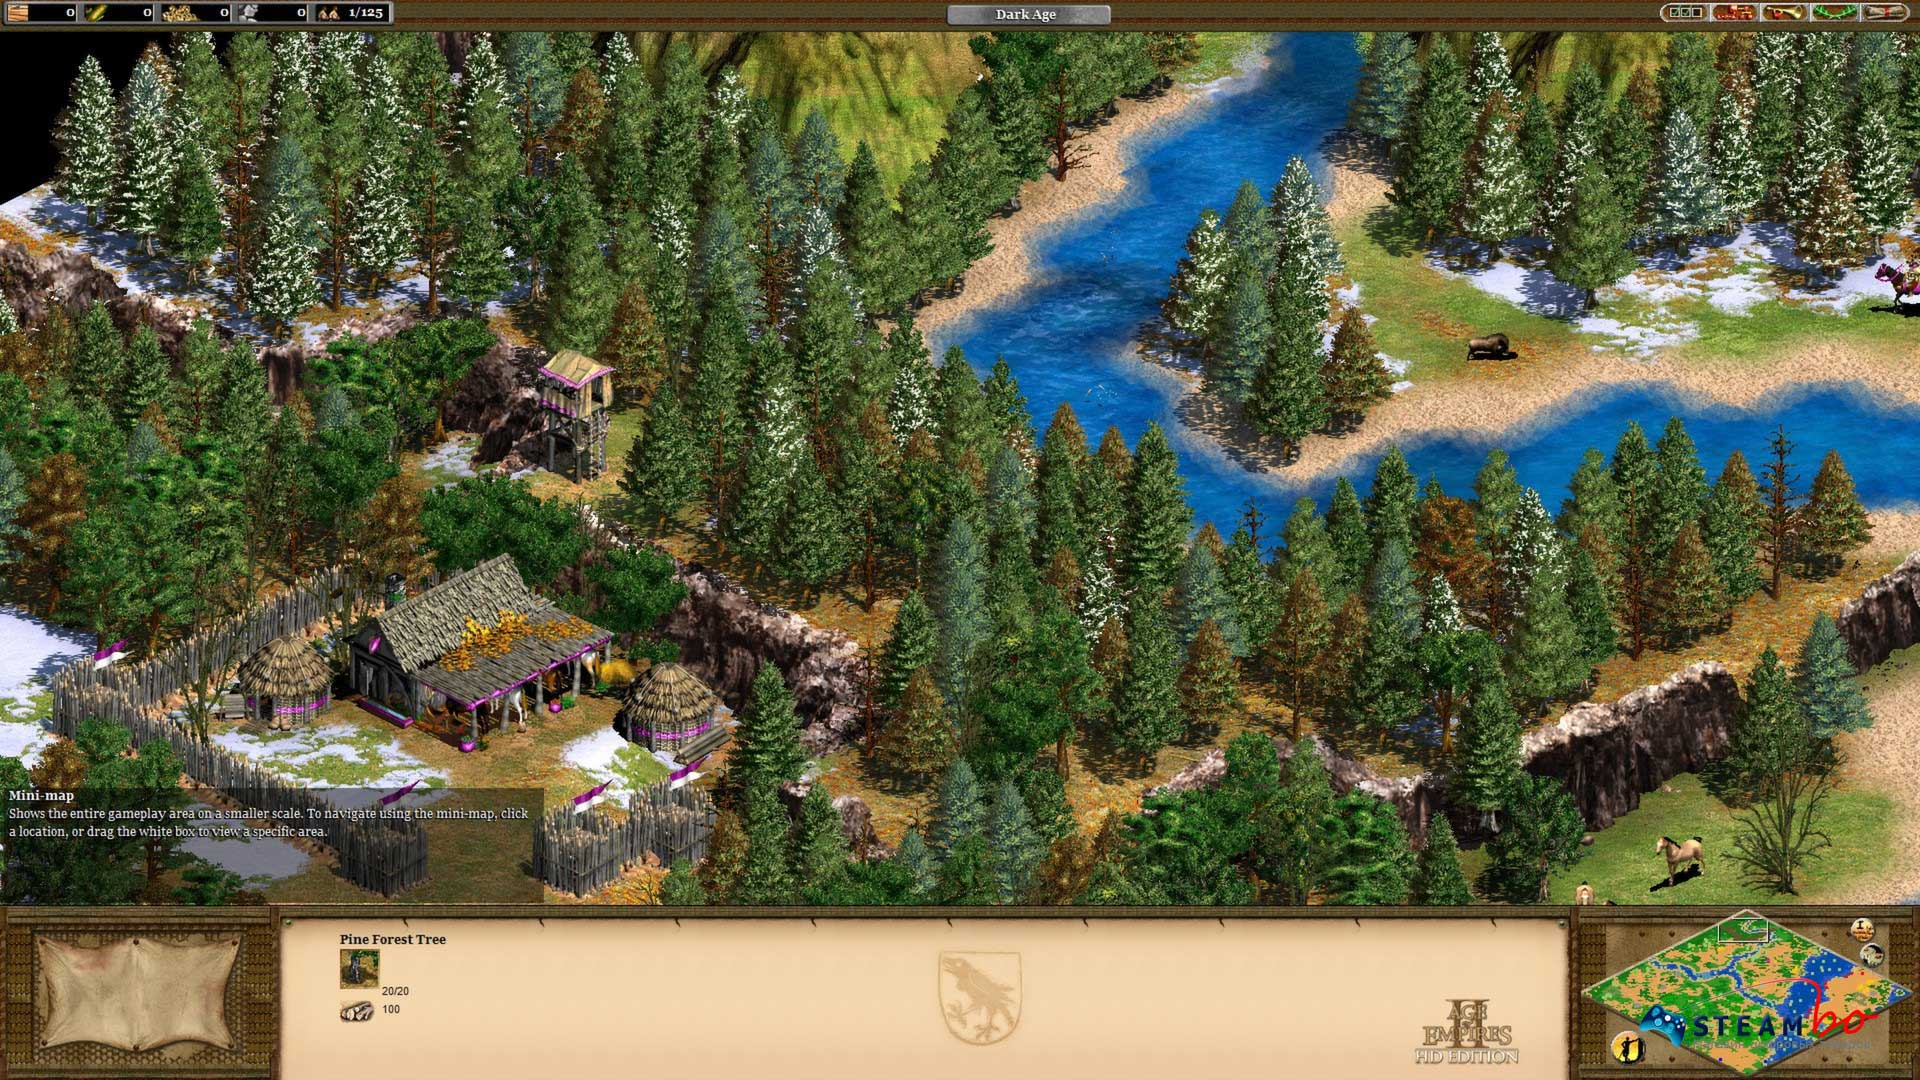 Age of Empires II HD RU/CIS (Steam Gift/Key)